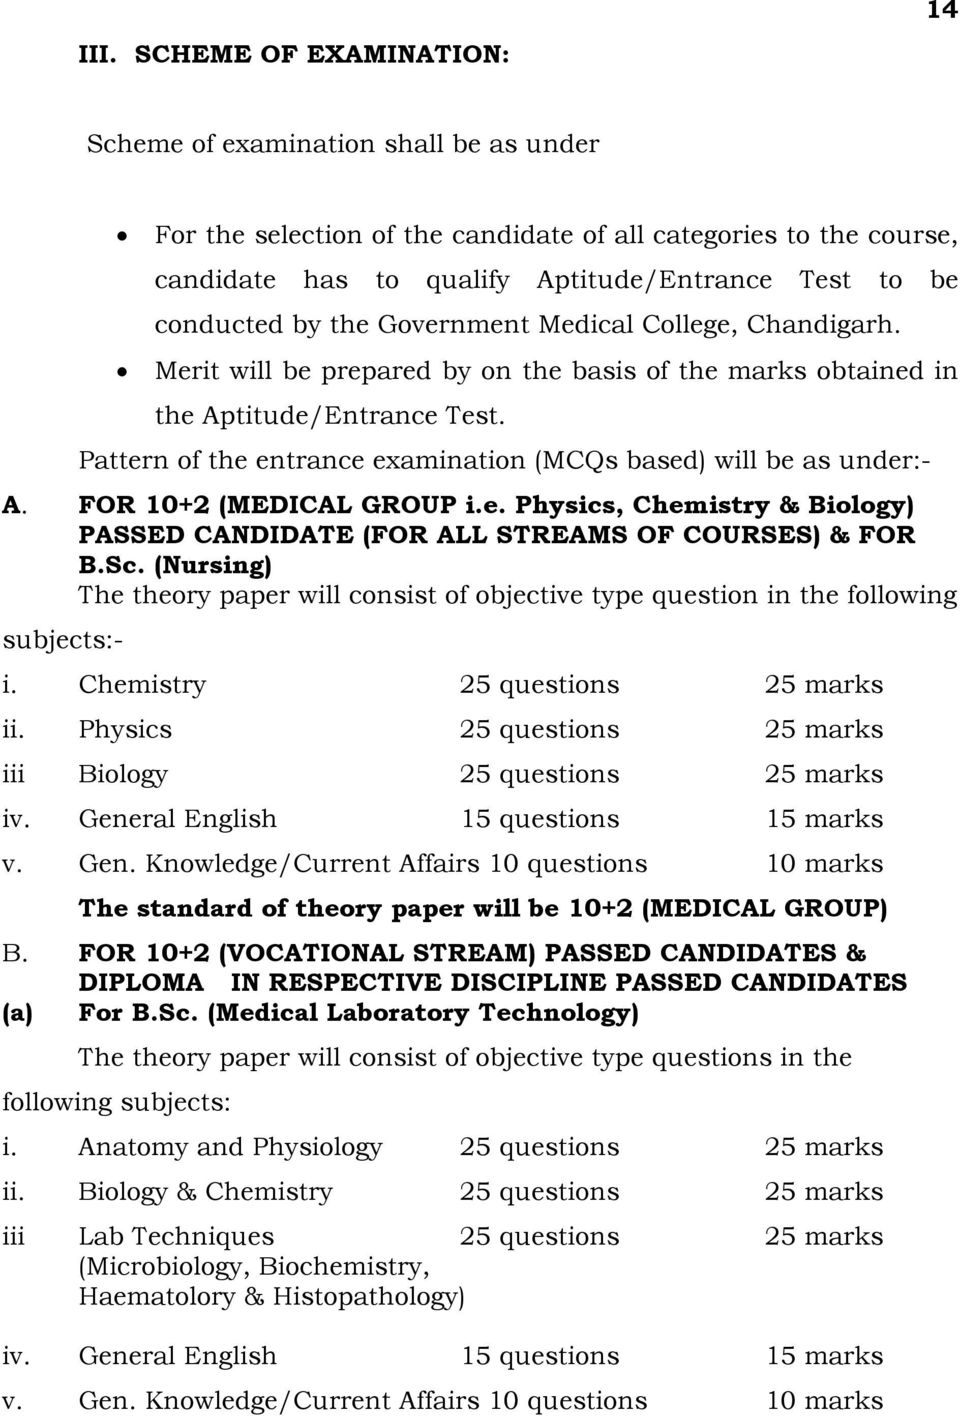 Pattern of the entrance examination (MCQs based) will be as under:- A. F 10+2 (MEDICAL GROUP i.e. Physics, Chemistry & Biology) PASSED CANDIDATE (F ALL STREAMS OF COURSES) & F B.Sc.